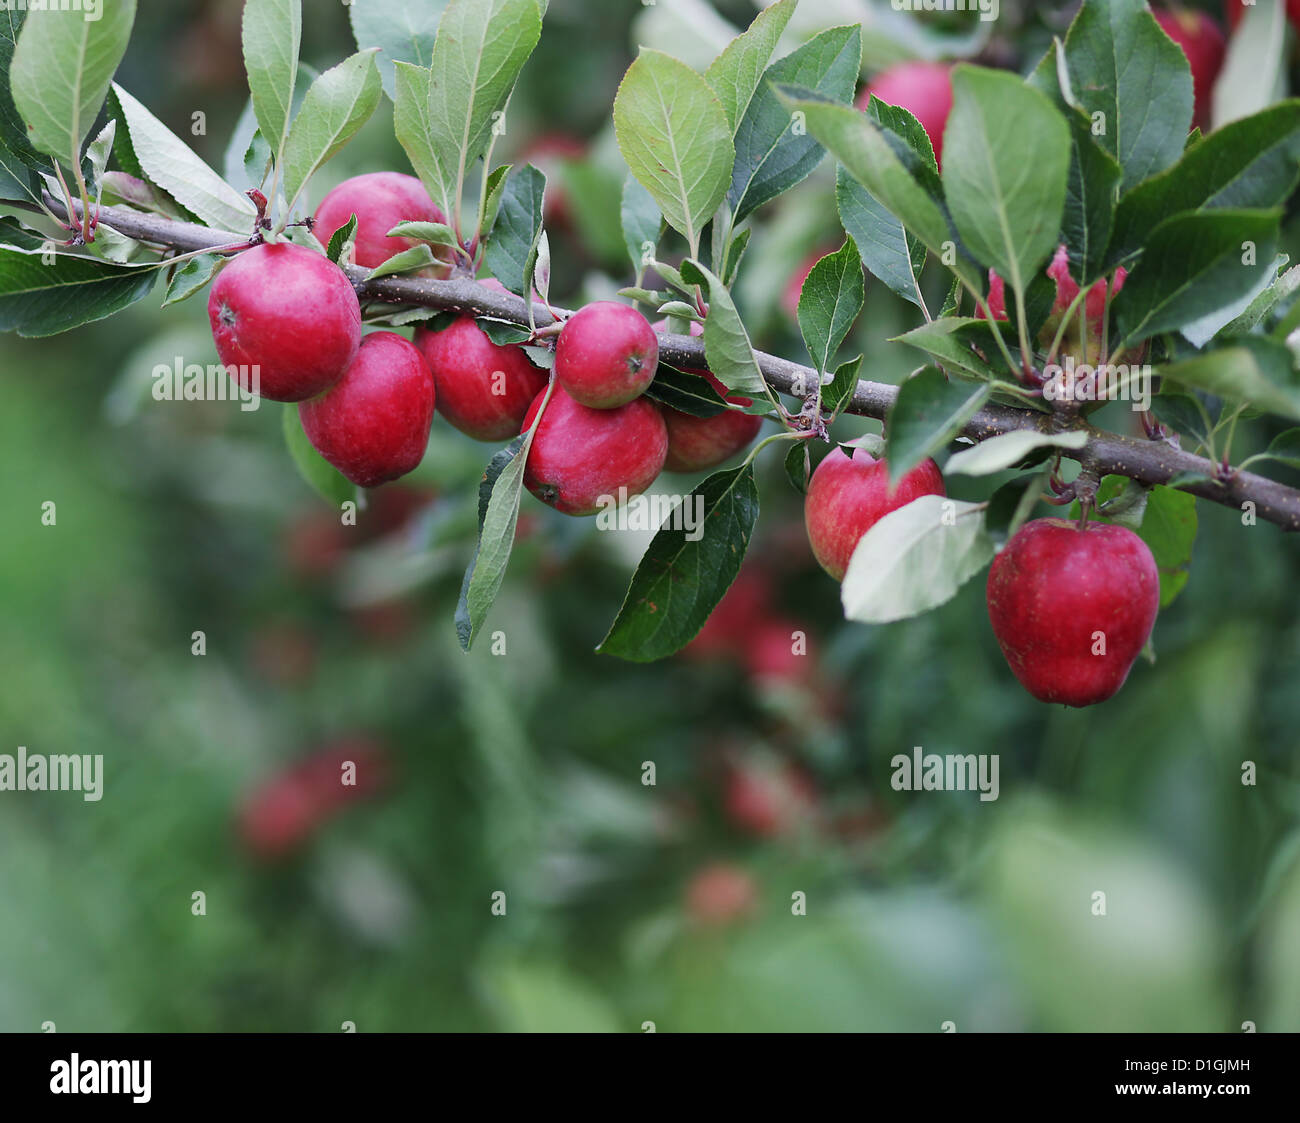 Close up of natural apples on apple trees in the spring - Stock Image